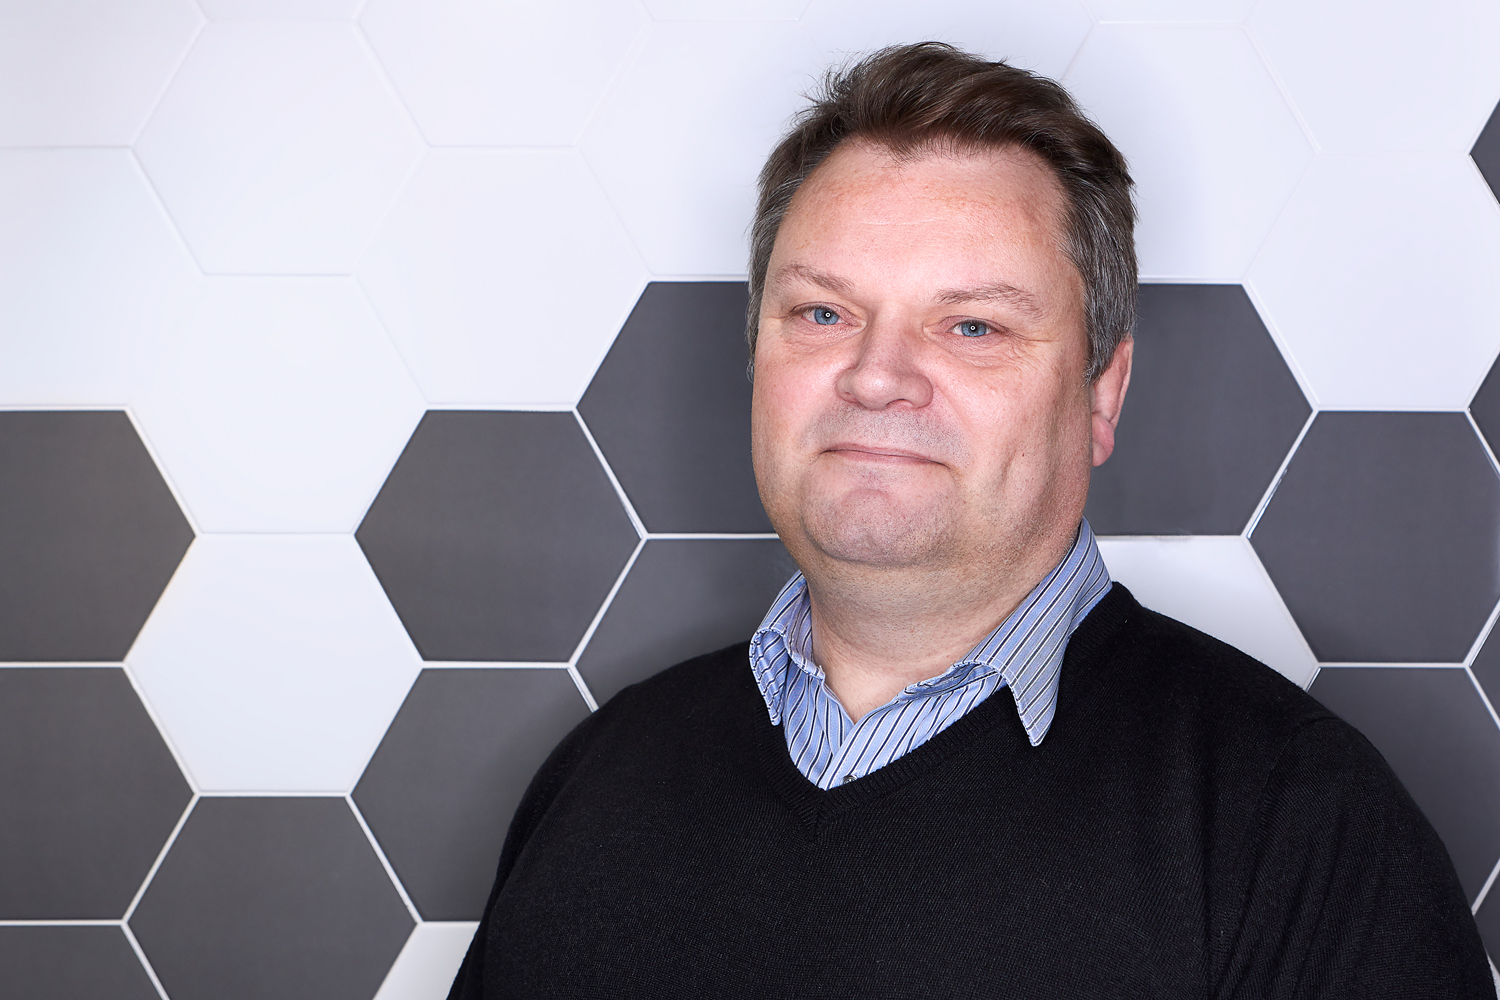 British Ceramic Tile Appoints New Commercial Director